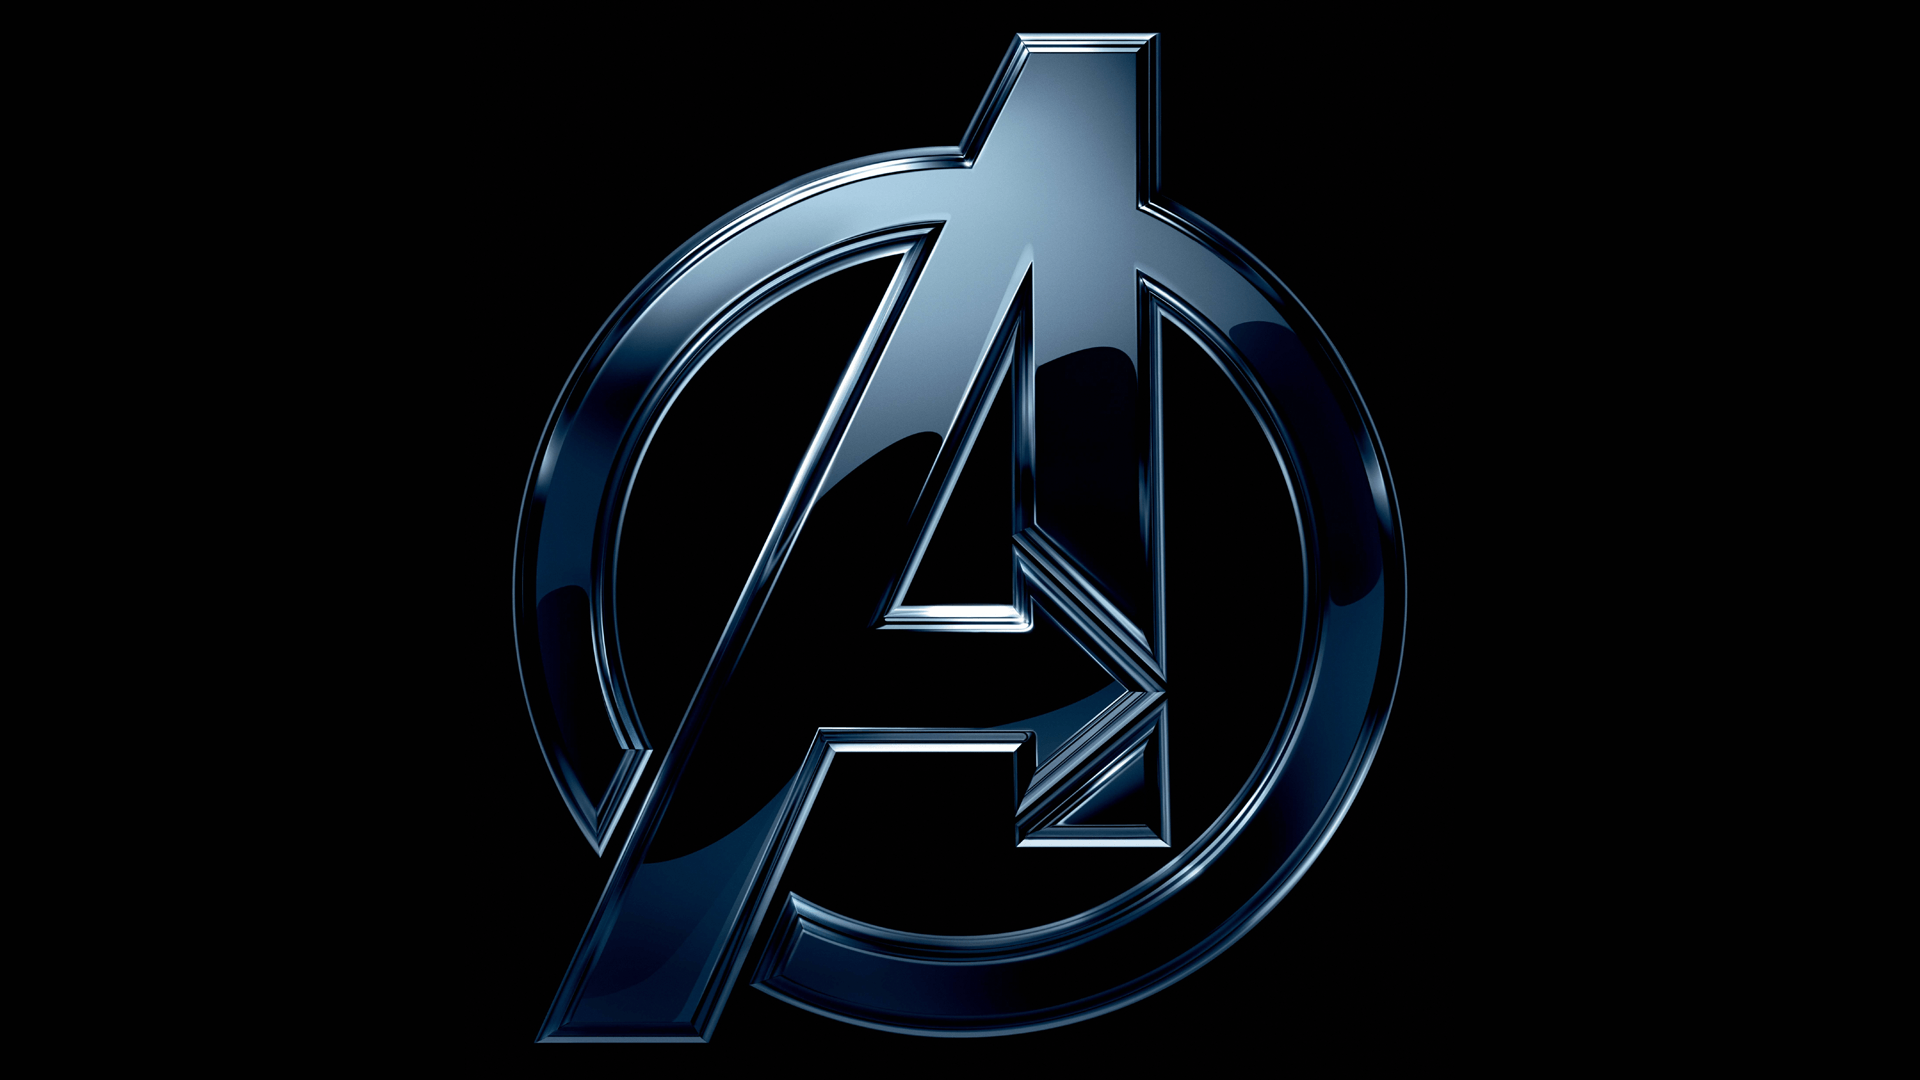 avengers logo wallpapers top free avengers logo backgrounds wallpaperaccess avengers logo wallpapers top free